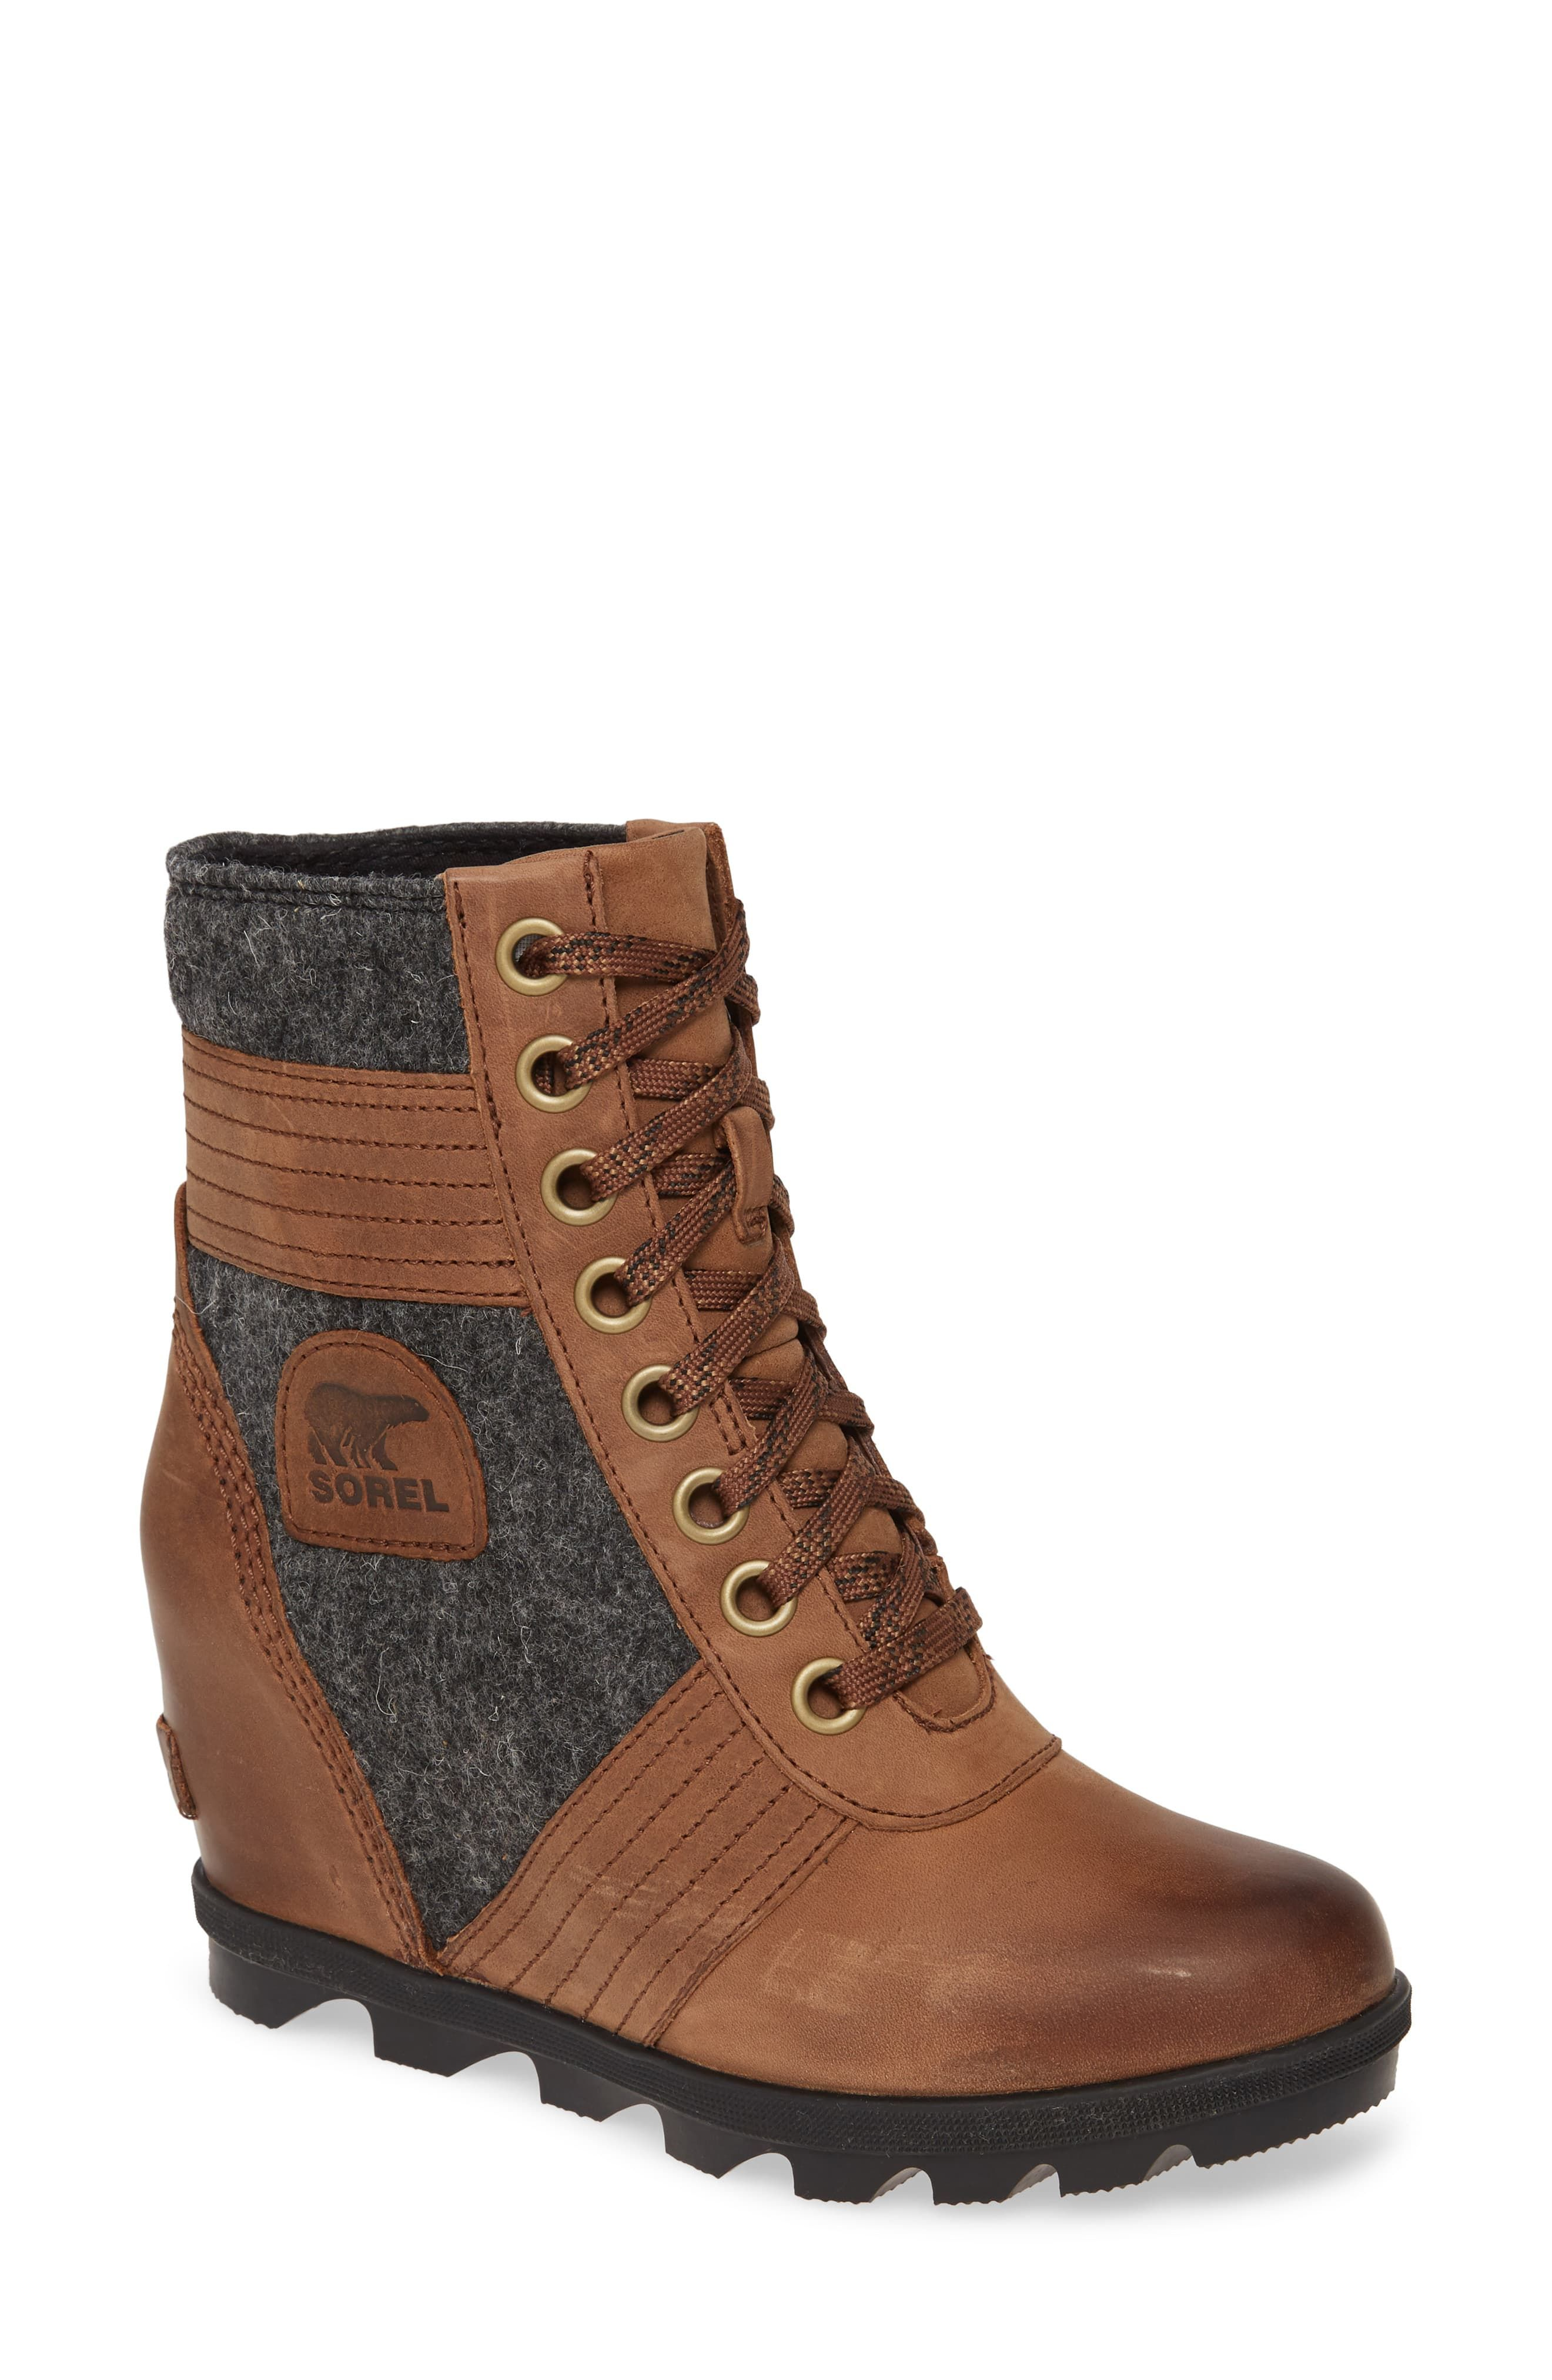 Fall Boots for Plantar Fasciitis